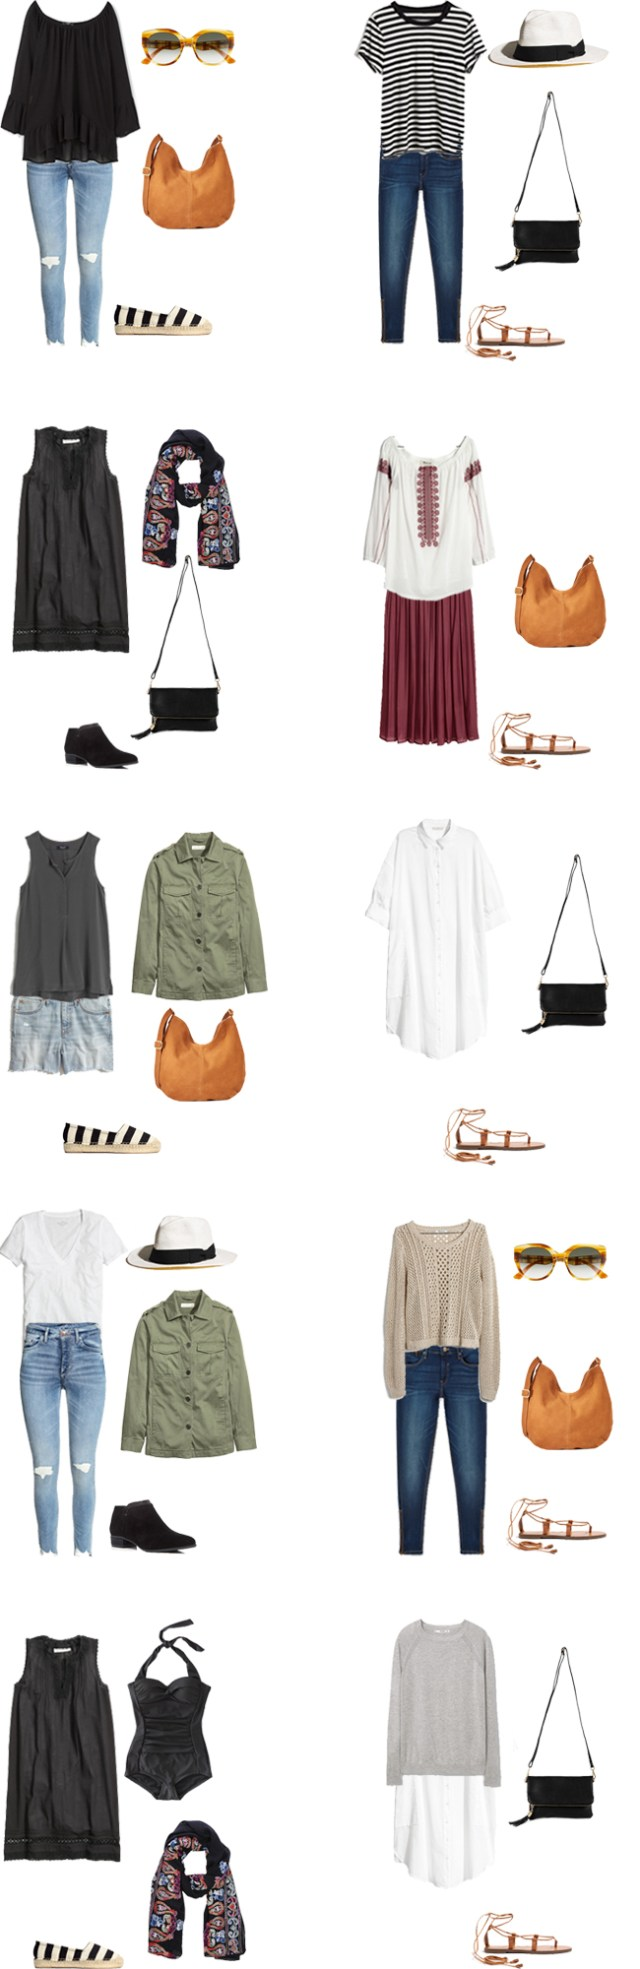 What to Wear in Spain and Italy Outfit Options 21-30 #travellight #packinglight #travel #traveltips